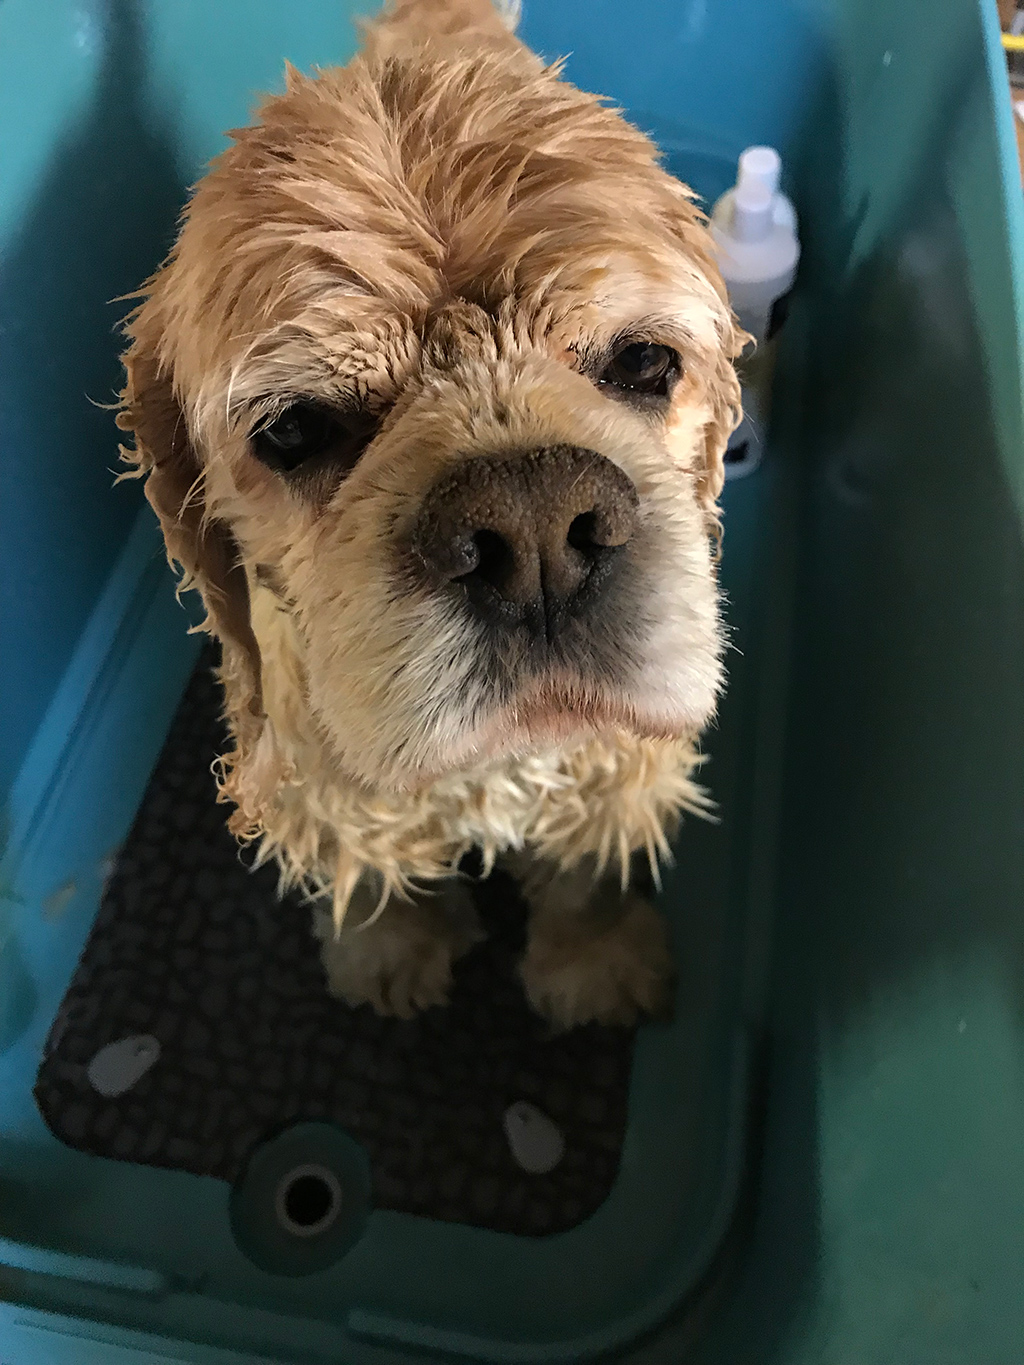 A wet cocker spaniel in bathtub